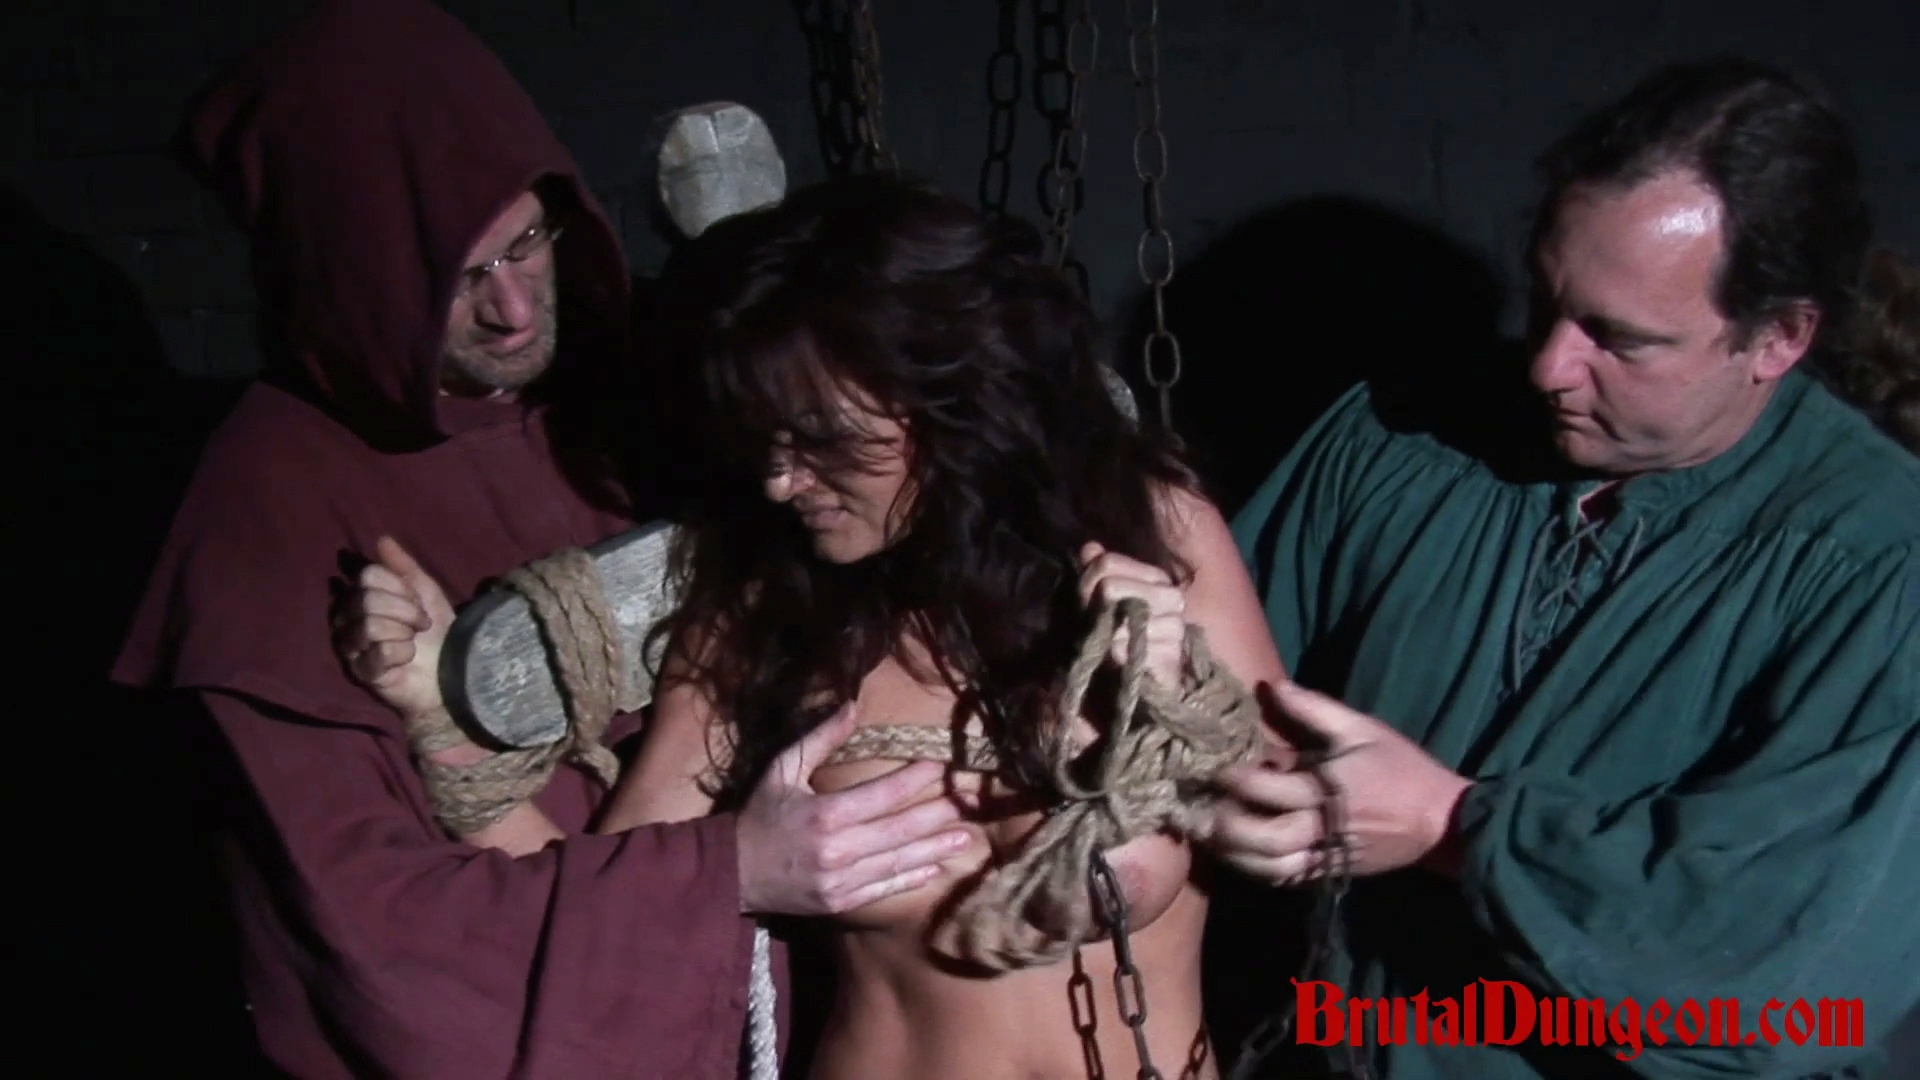 Brunette janessa thrown in prison and gangbanged. The tiny brunette witch Janessa has been observed doing strange magical spells in the forest. She's arrested and punished at once! She must endure imprisonment, rope bondage, domination, BDSM fun, gang bang, gagging, spanking, slapping, fingering, tit, nipple and kitty torment.